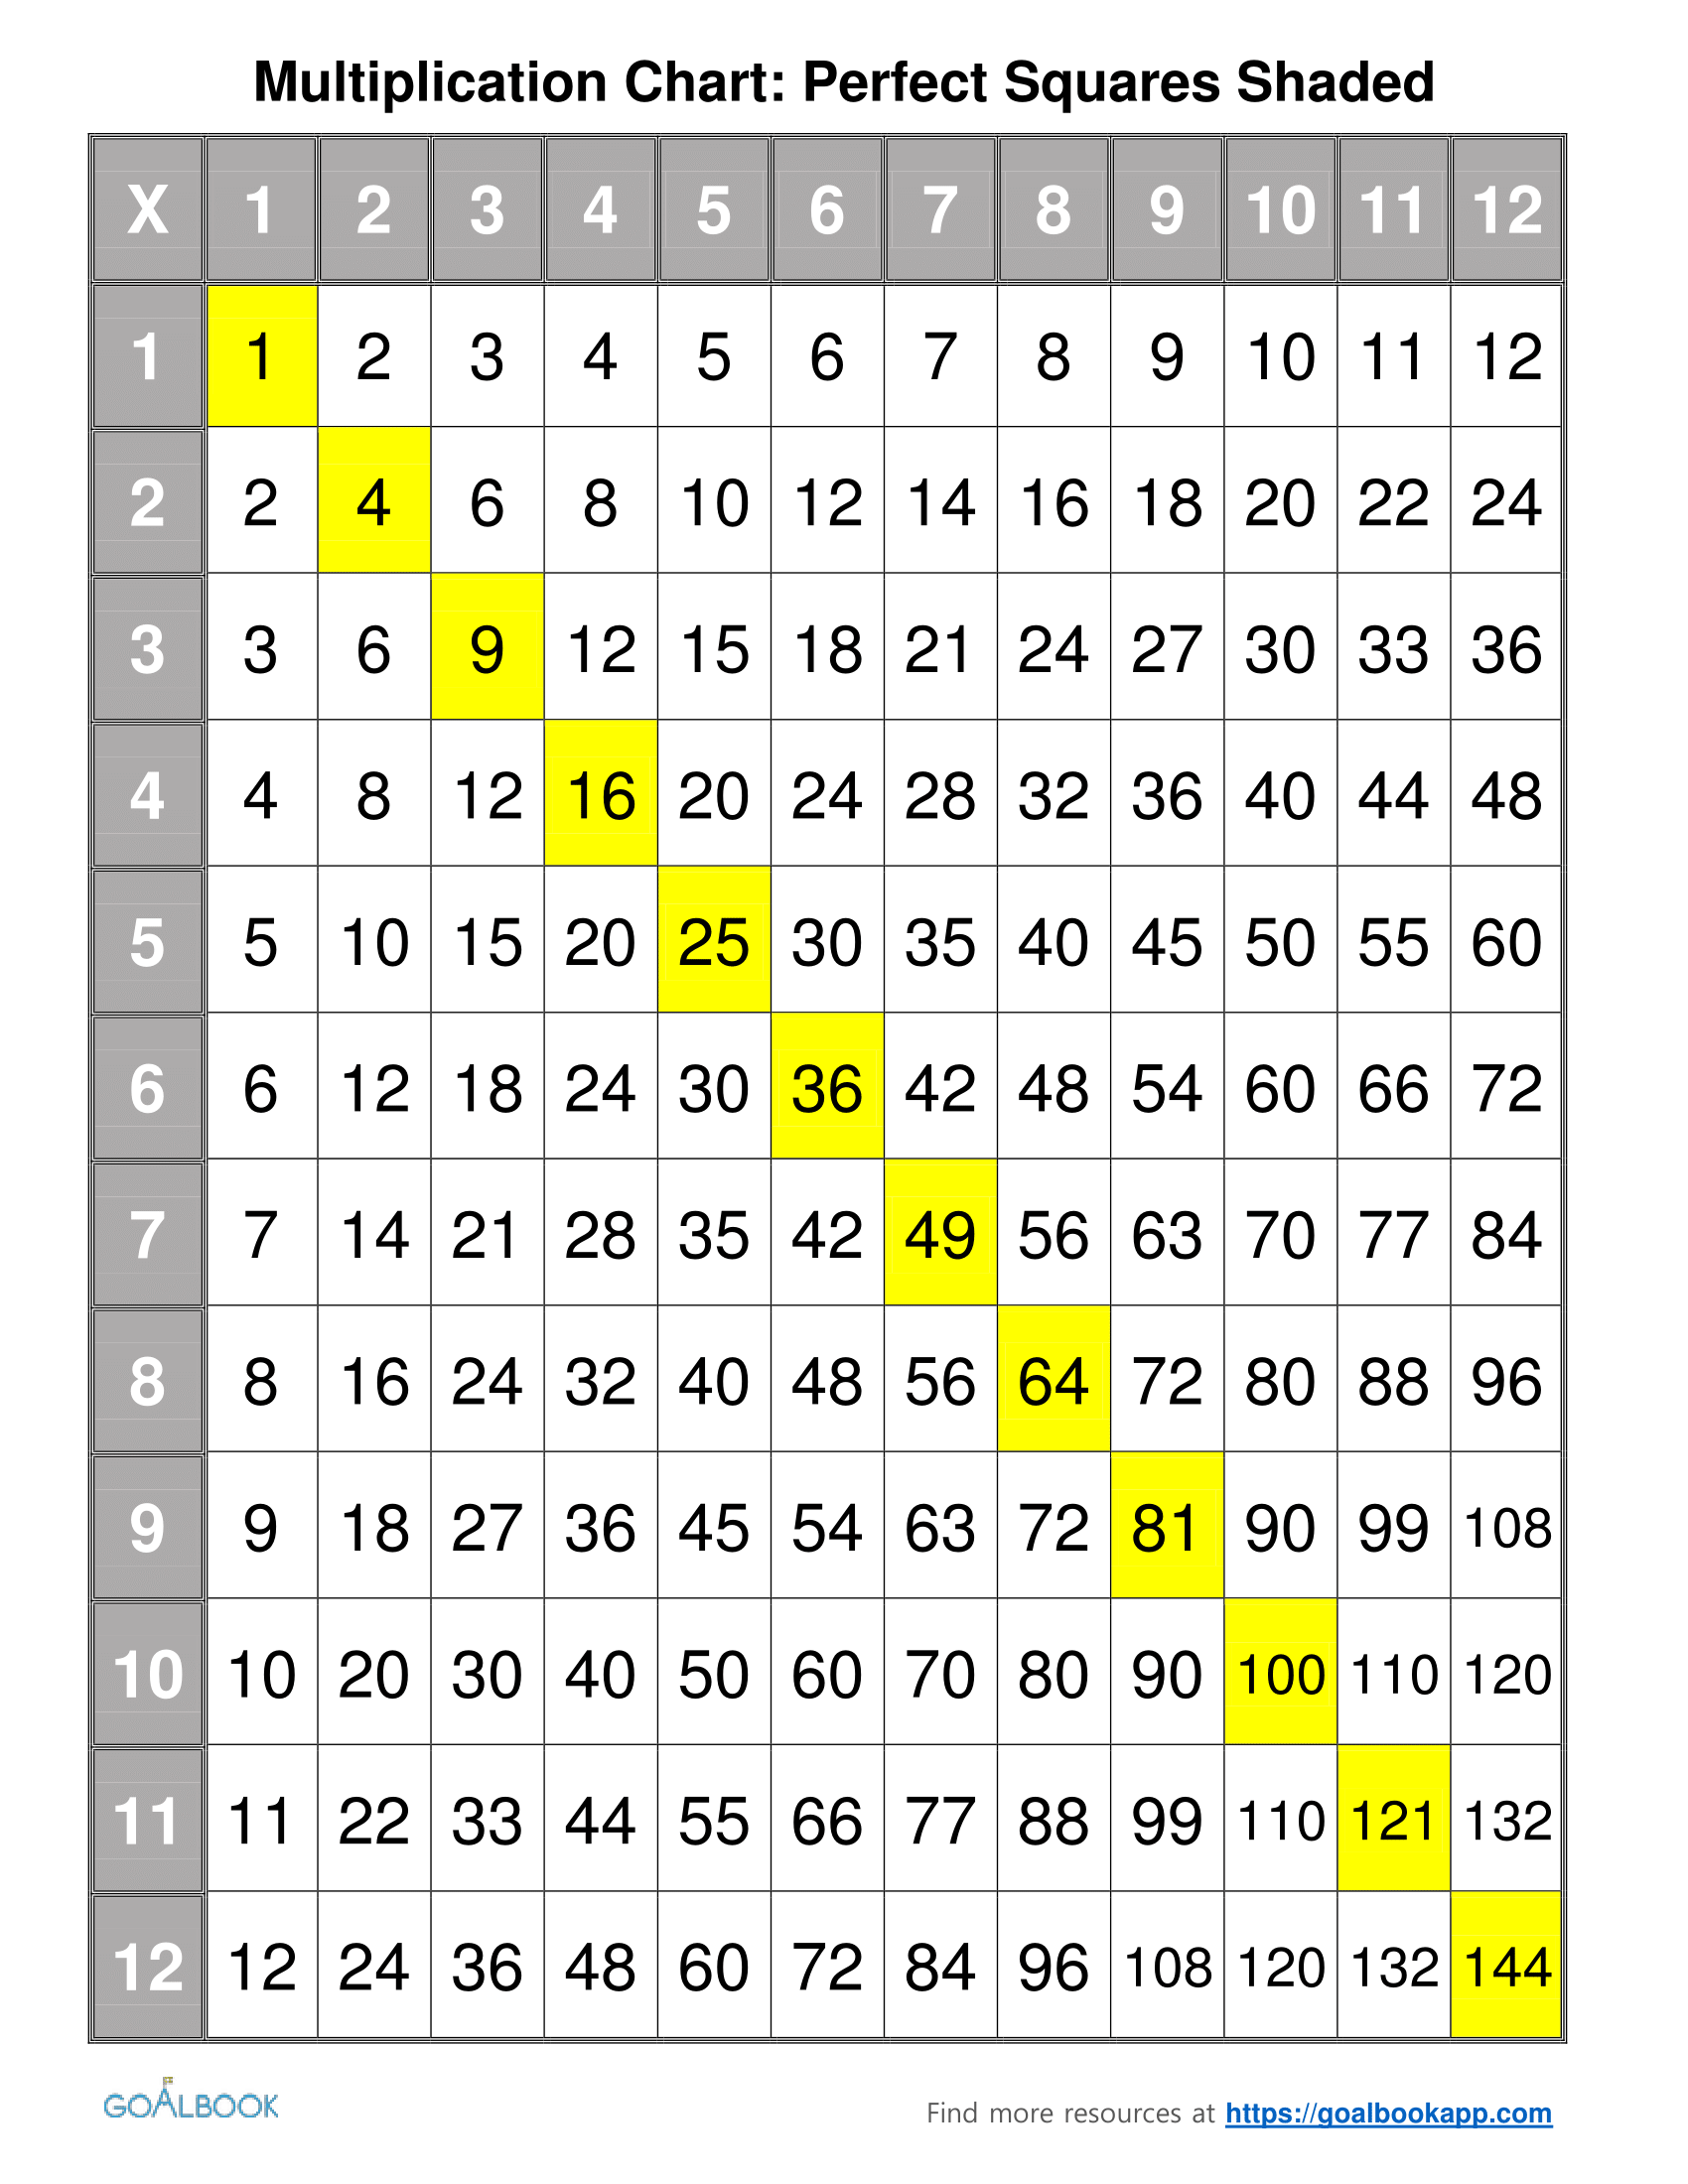 Multiplication Chart | Udl Strategies - Goalbook Toolkit